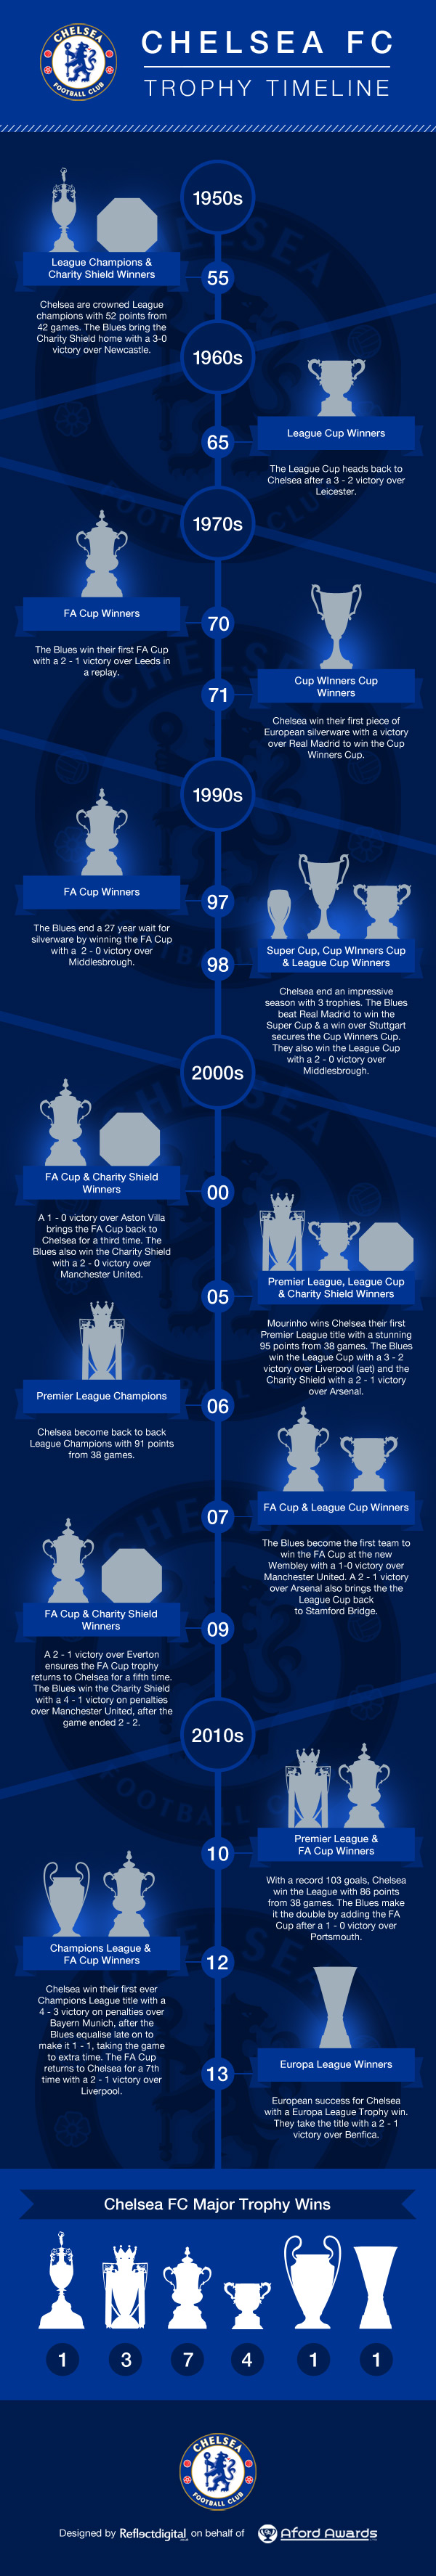 Infographic: Timeline of Chelsea's successes since their formation in 1905